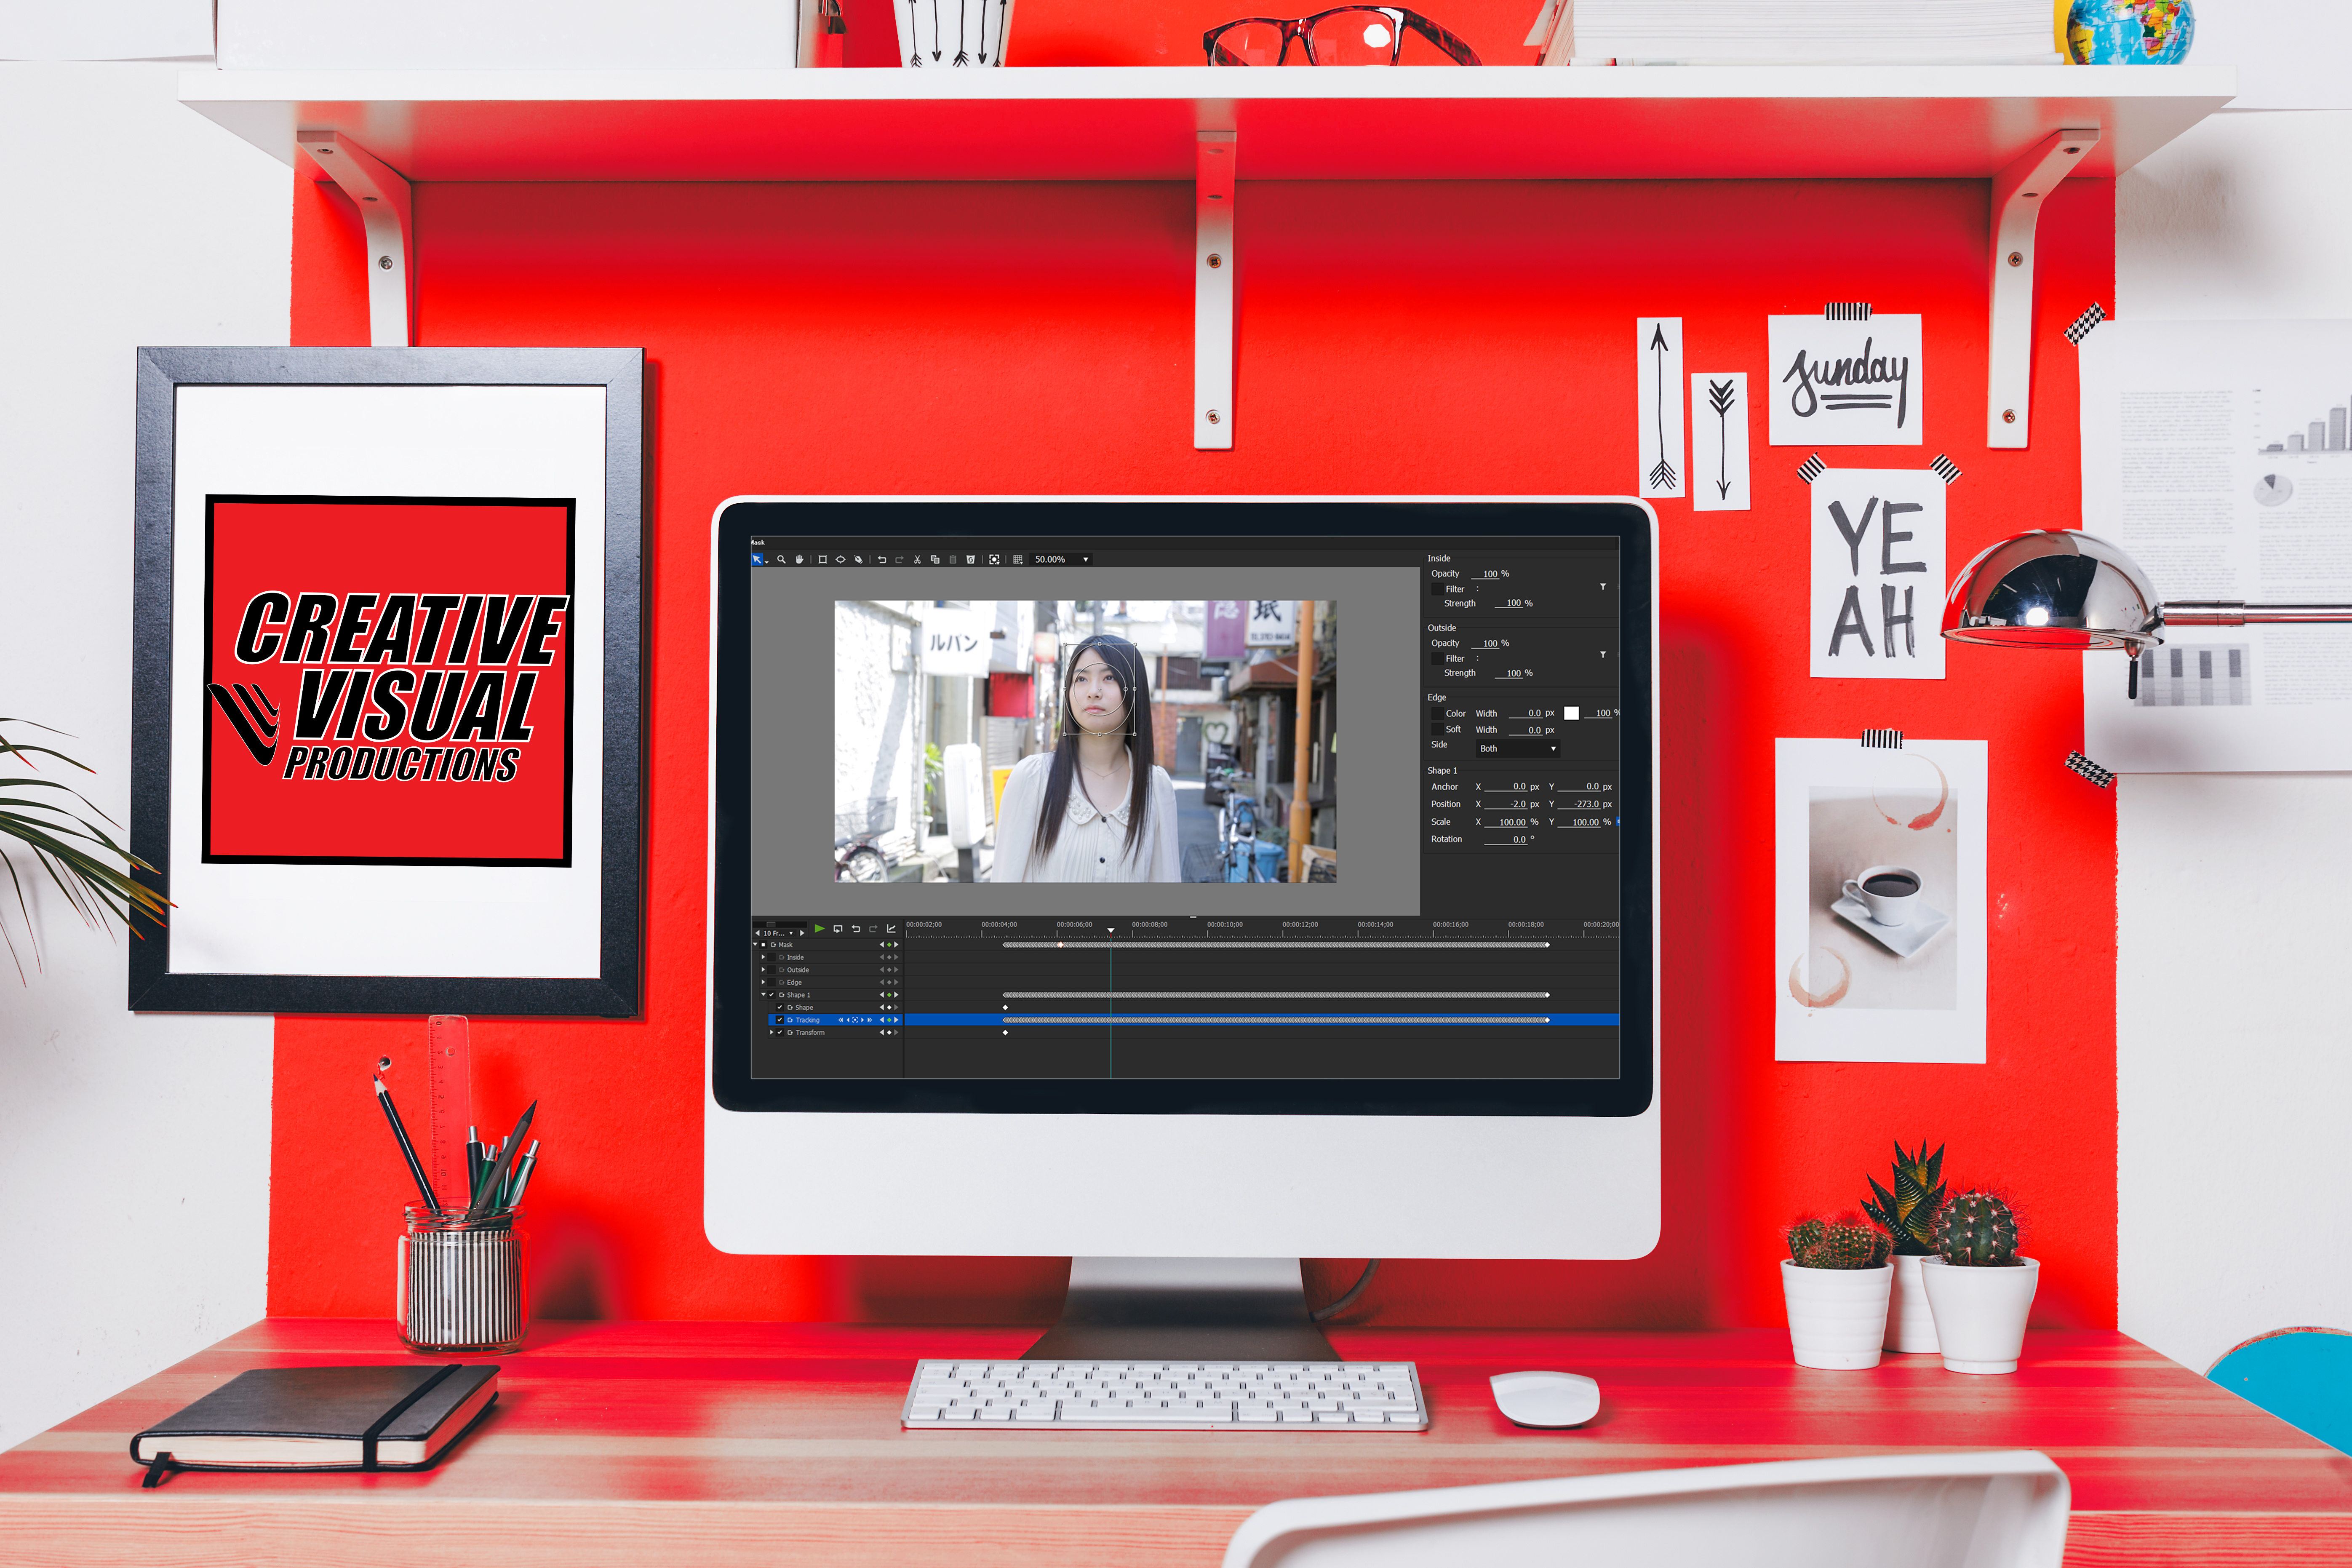 Professionally edited videos in woodbury new jersey